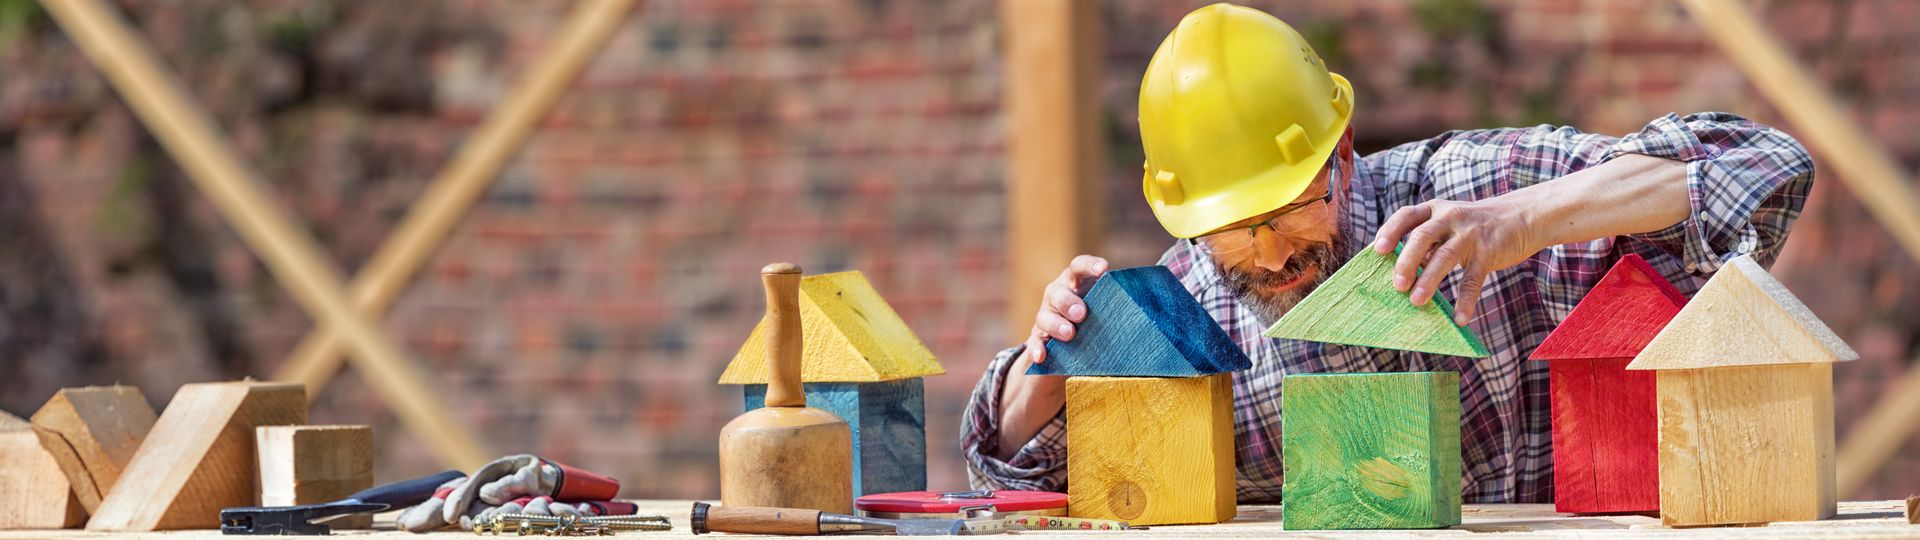 Building Houses with Wood, Creativity